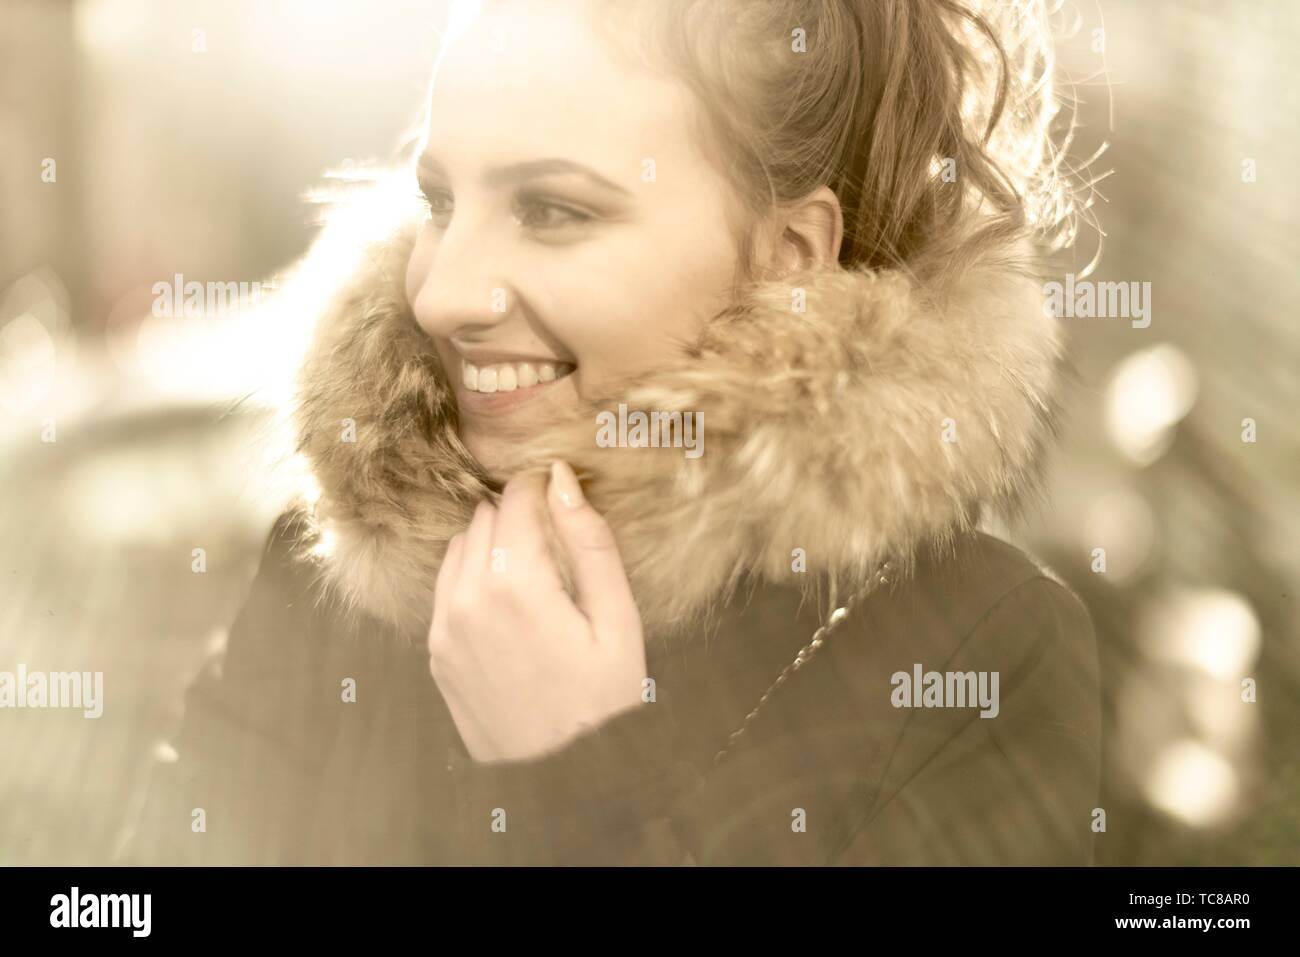 young woman wearing winter jacket with pelt collar in sunlight, in Munich, Germany. Stock Photo